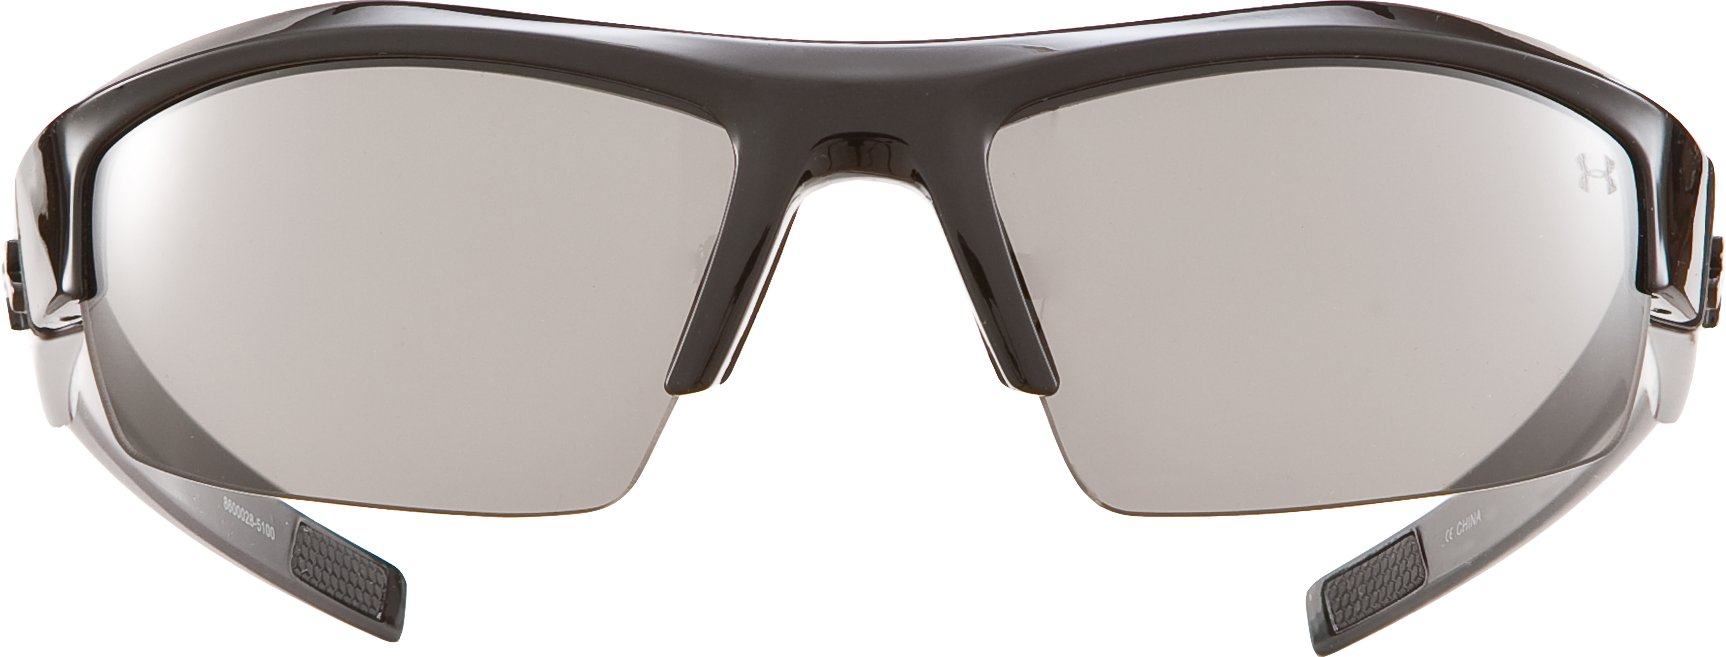 UA Igniter Sunglasses, Shiny Black